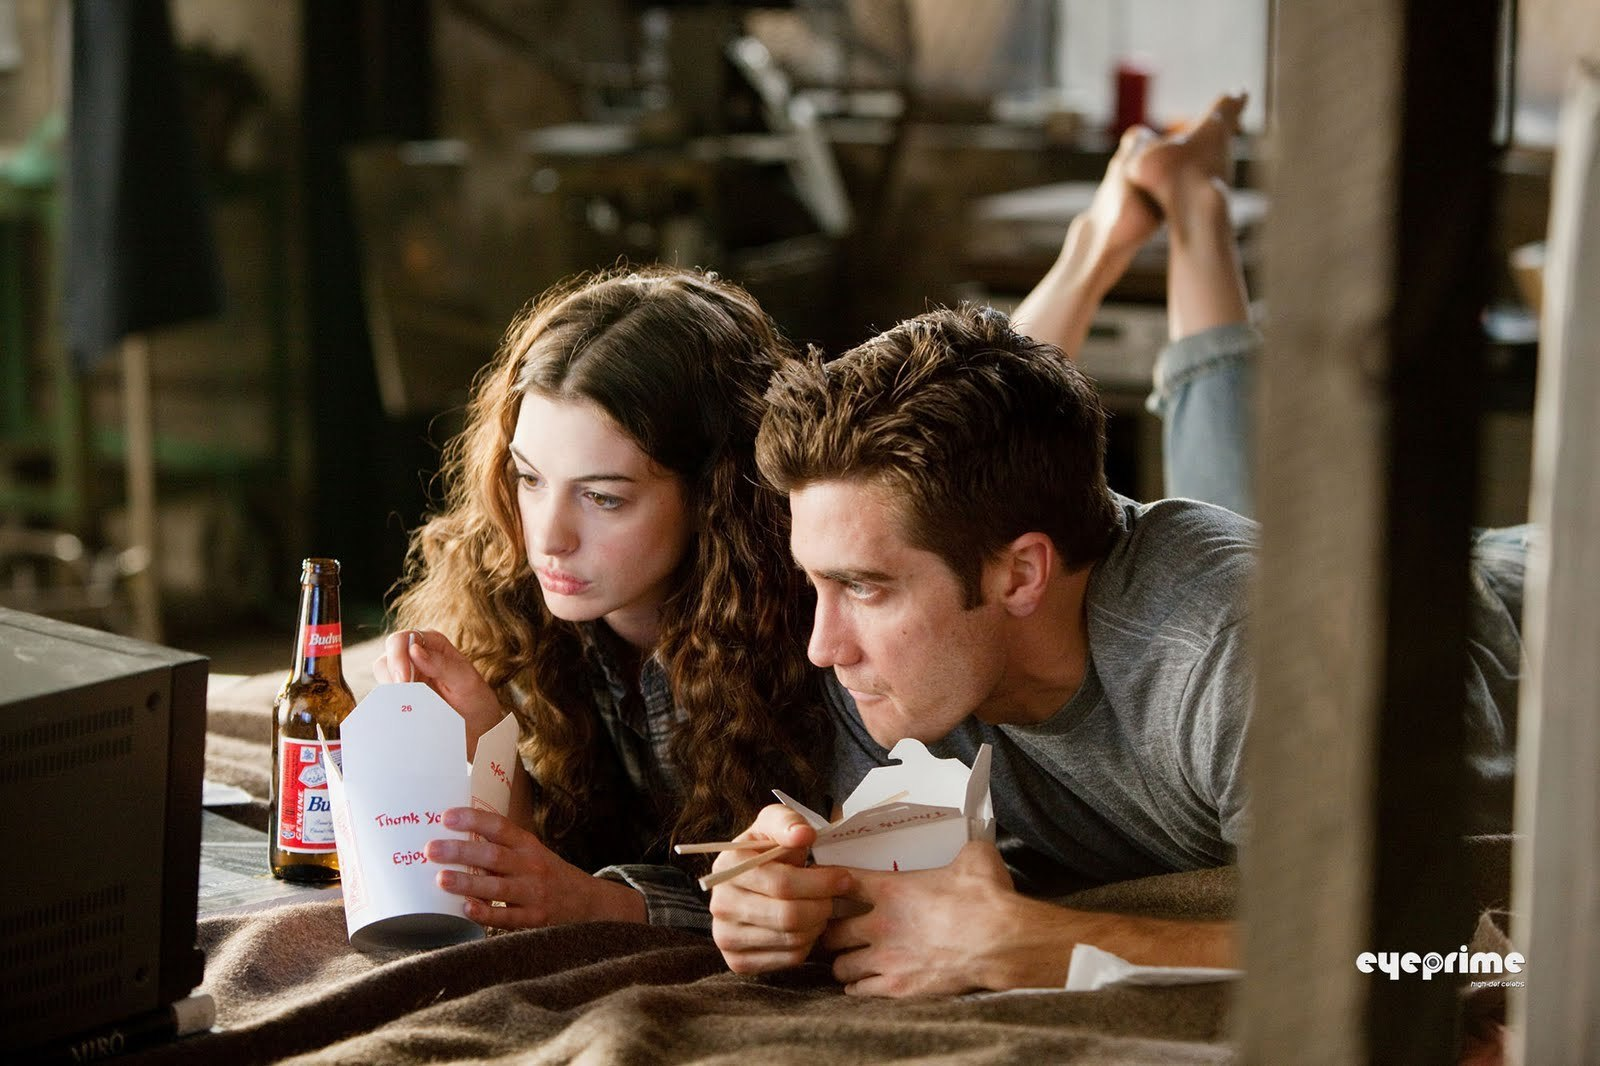 http://4.bp.blogspot.com/-E3hpaF09CkM/TdQKU9JHwvI/AAAAAAAAAFA/NVCUdbqJo1A/s1600/Love-and-Other-Drugs-Stills-anne-hathaway-and-jake-gyllenhaal-17991532-1600-1066.jpg